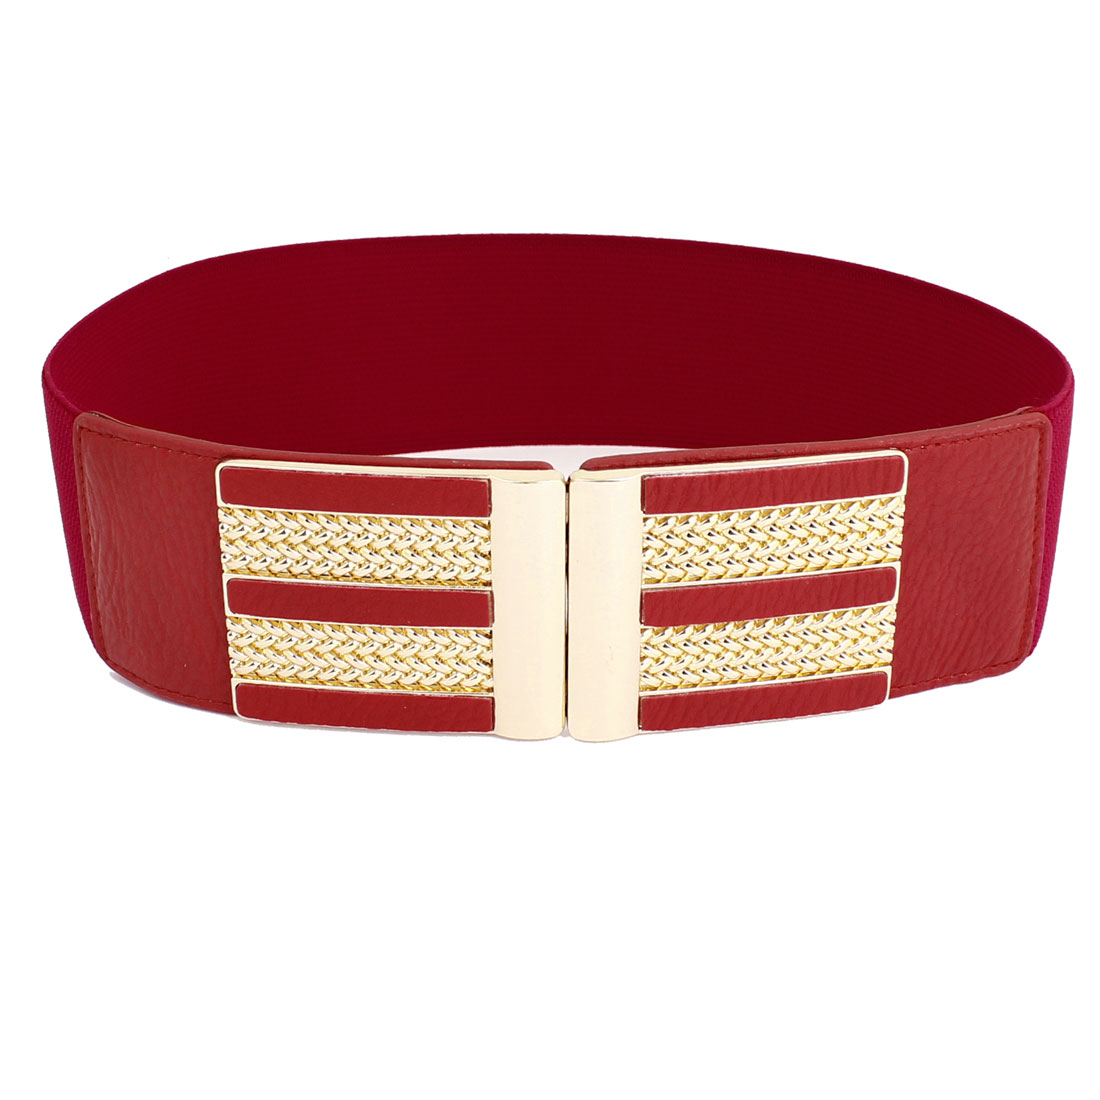 Ladies Metal Interlocking Buckle Stretchy Waistband Belt Decor 6cm Width Red